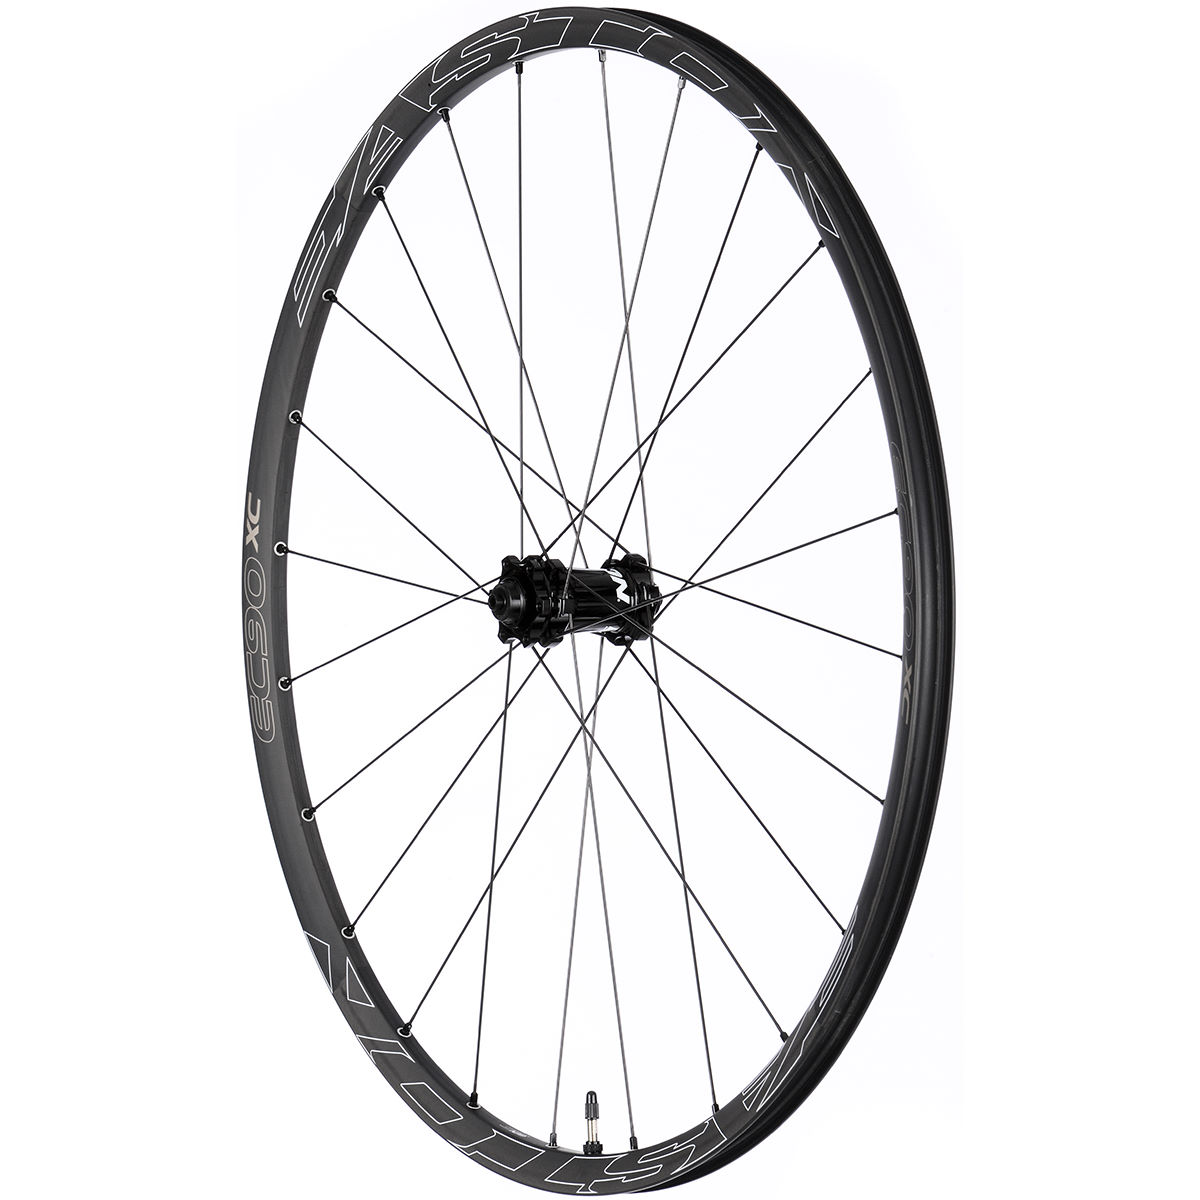 Easton EC90 XC Front MTB Wheel - Ruedas de competición